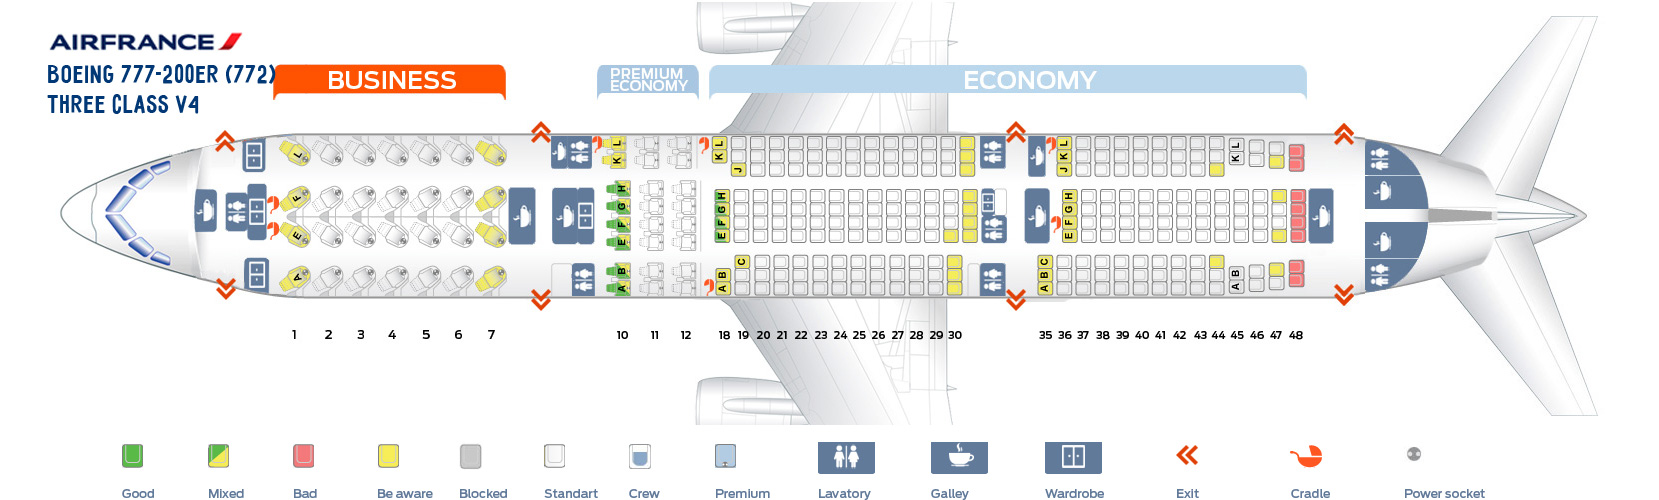 Seat Map Boeing 777-200ER Three Class V4 AirFrance